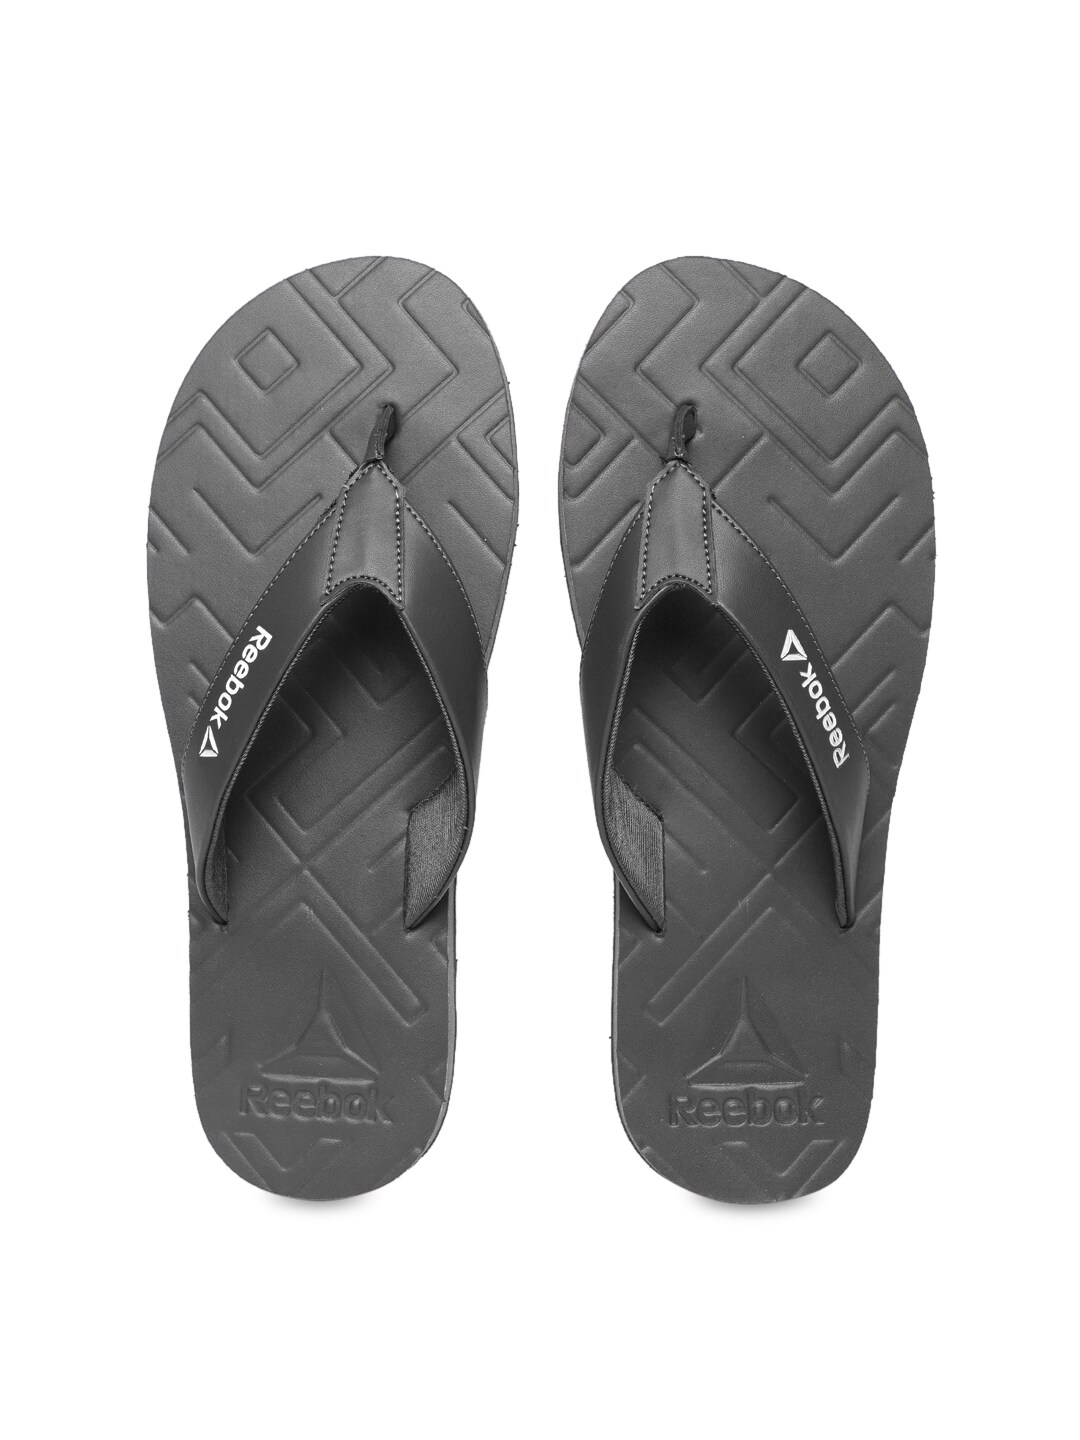 9f8dd4bfe Reebok Sports Footwear - Buy Reebok Sports Footwear Online in India